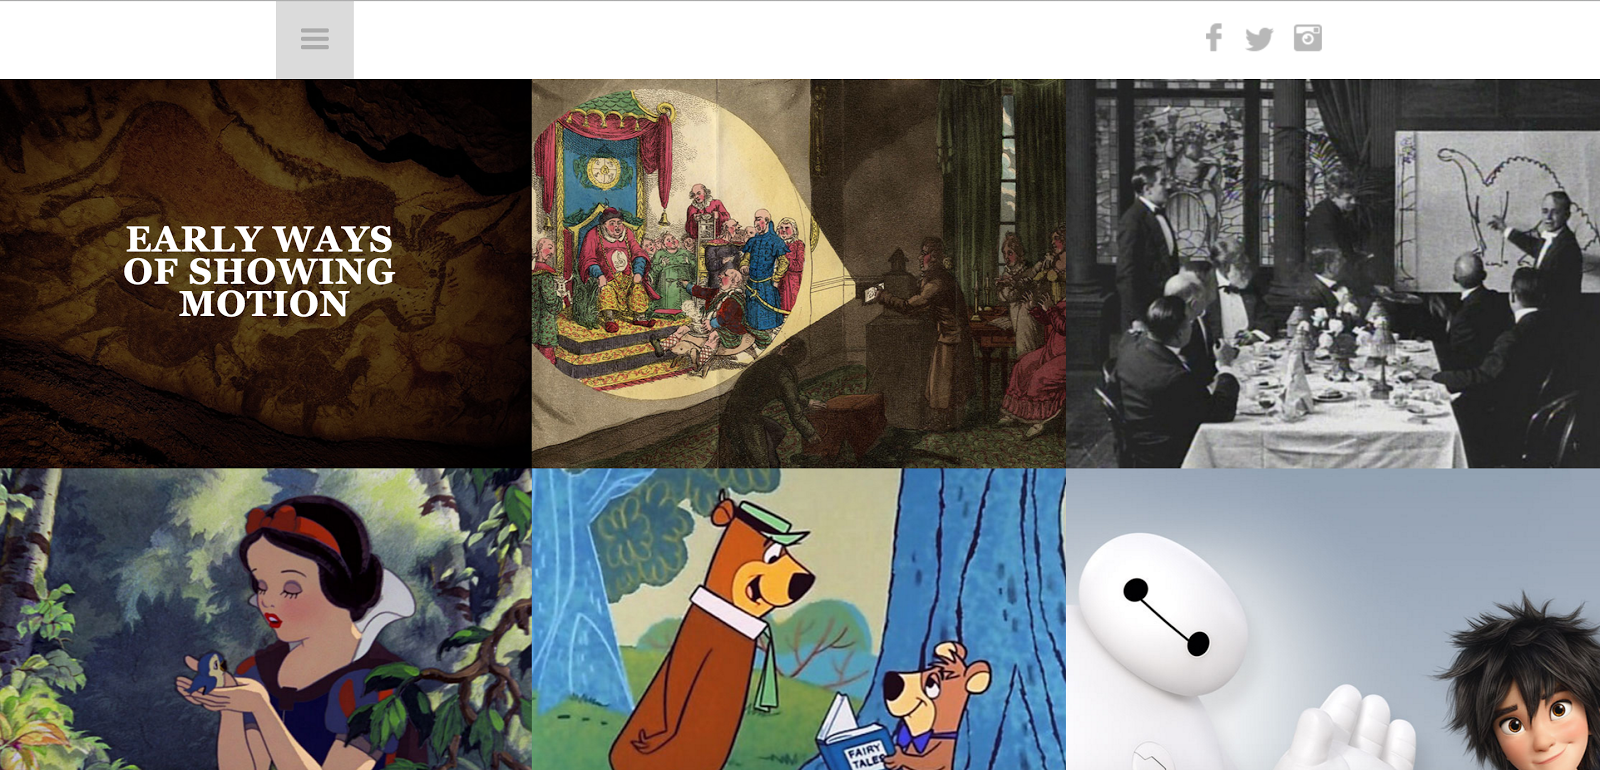 The History of Animation uses a grid of linked images as a navigation menu